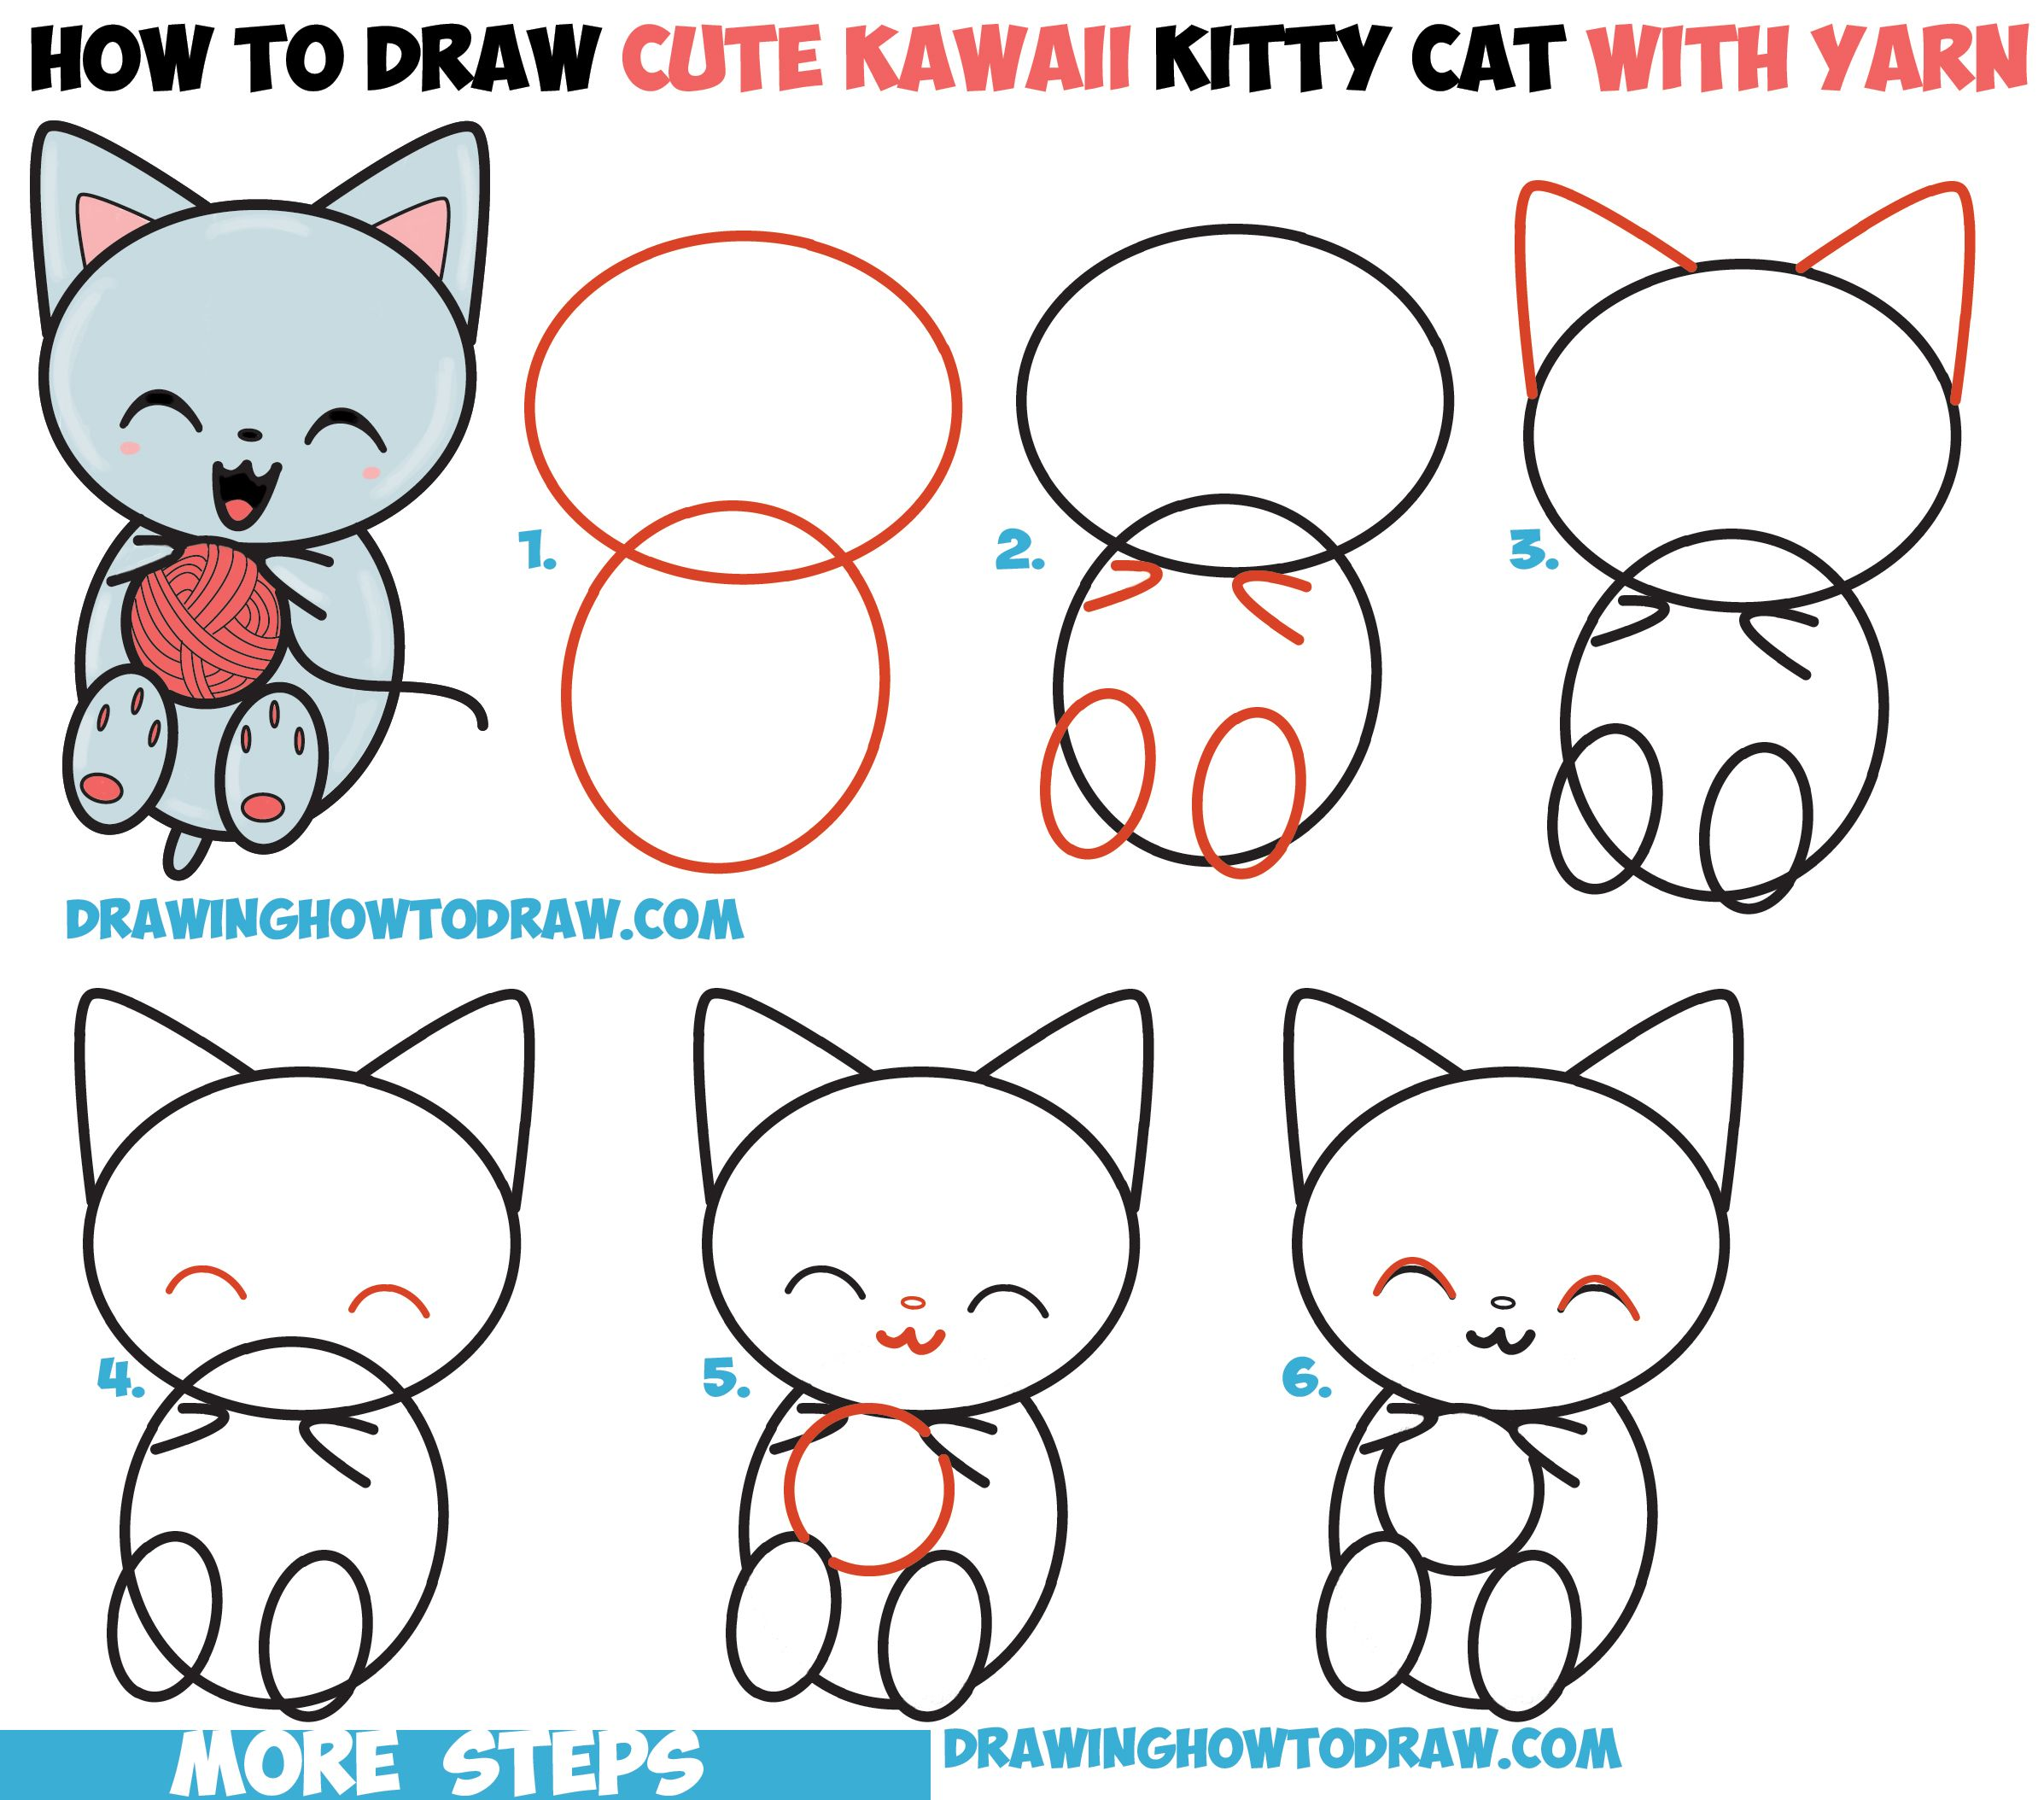 Uncategorized Simple Drawing For Kids Step By Step how to draw cute kawaii kitten cat playing with yarn easy step by drawing